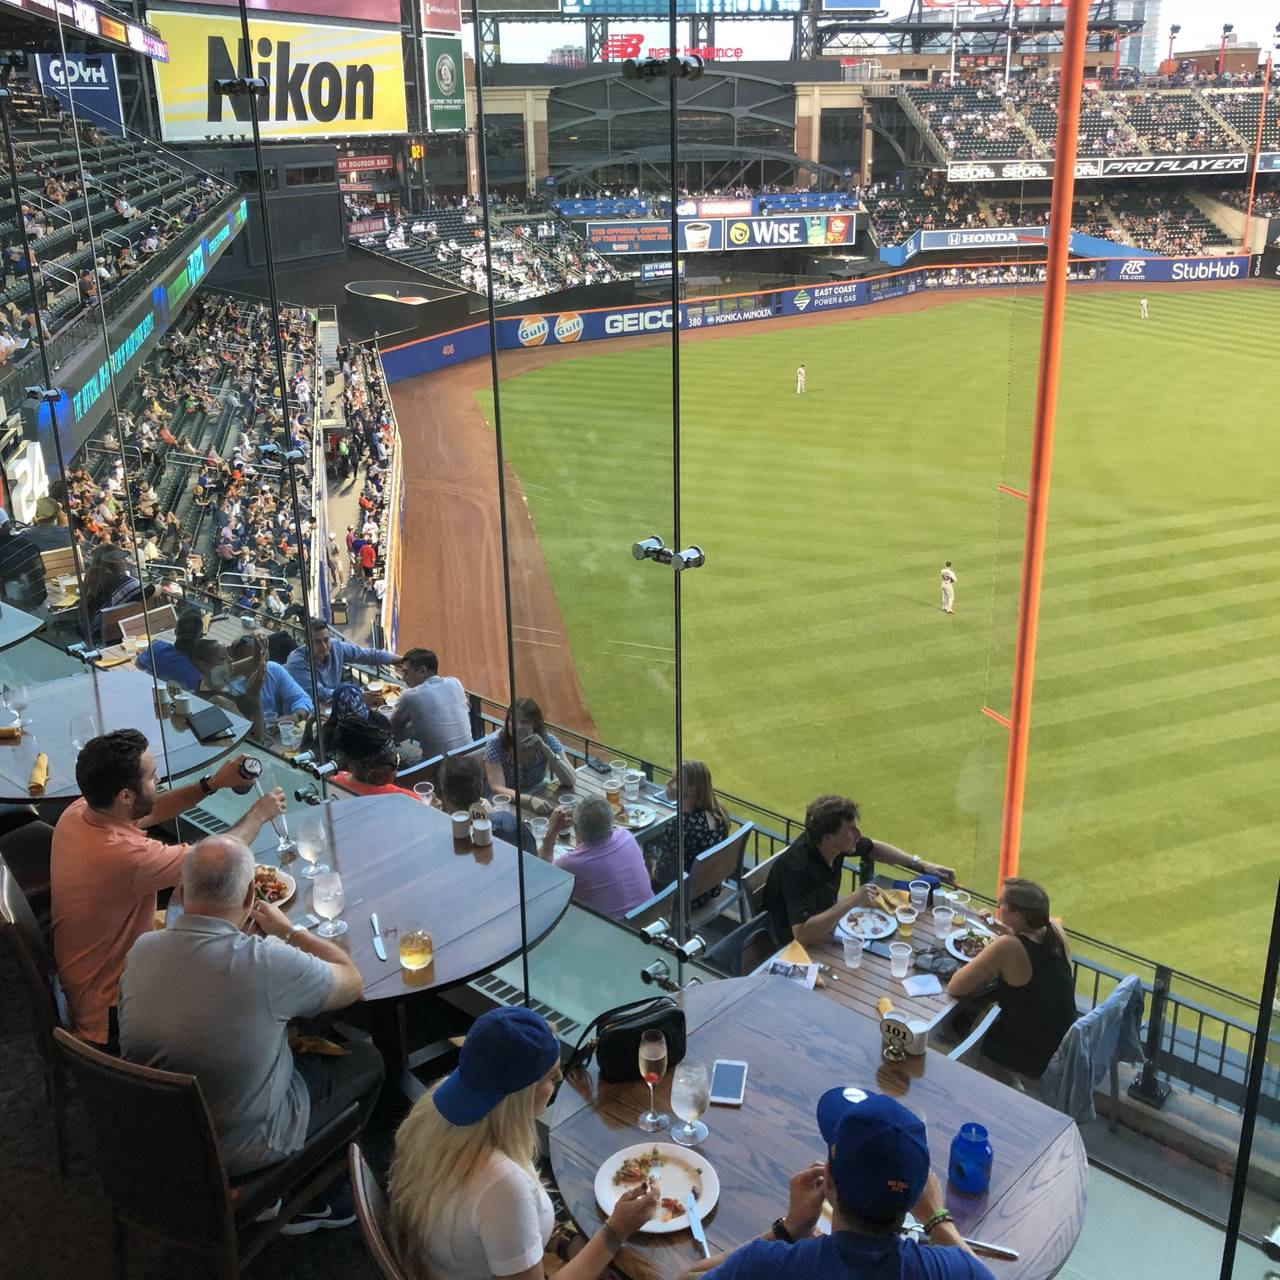 Porsche Grille at Citi Field (formerly the Acela Club) Restaurant ...